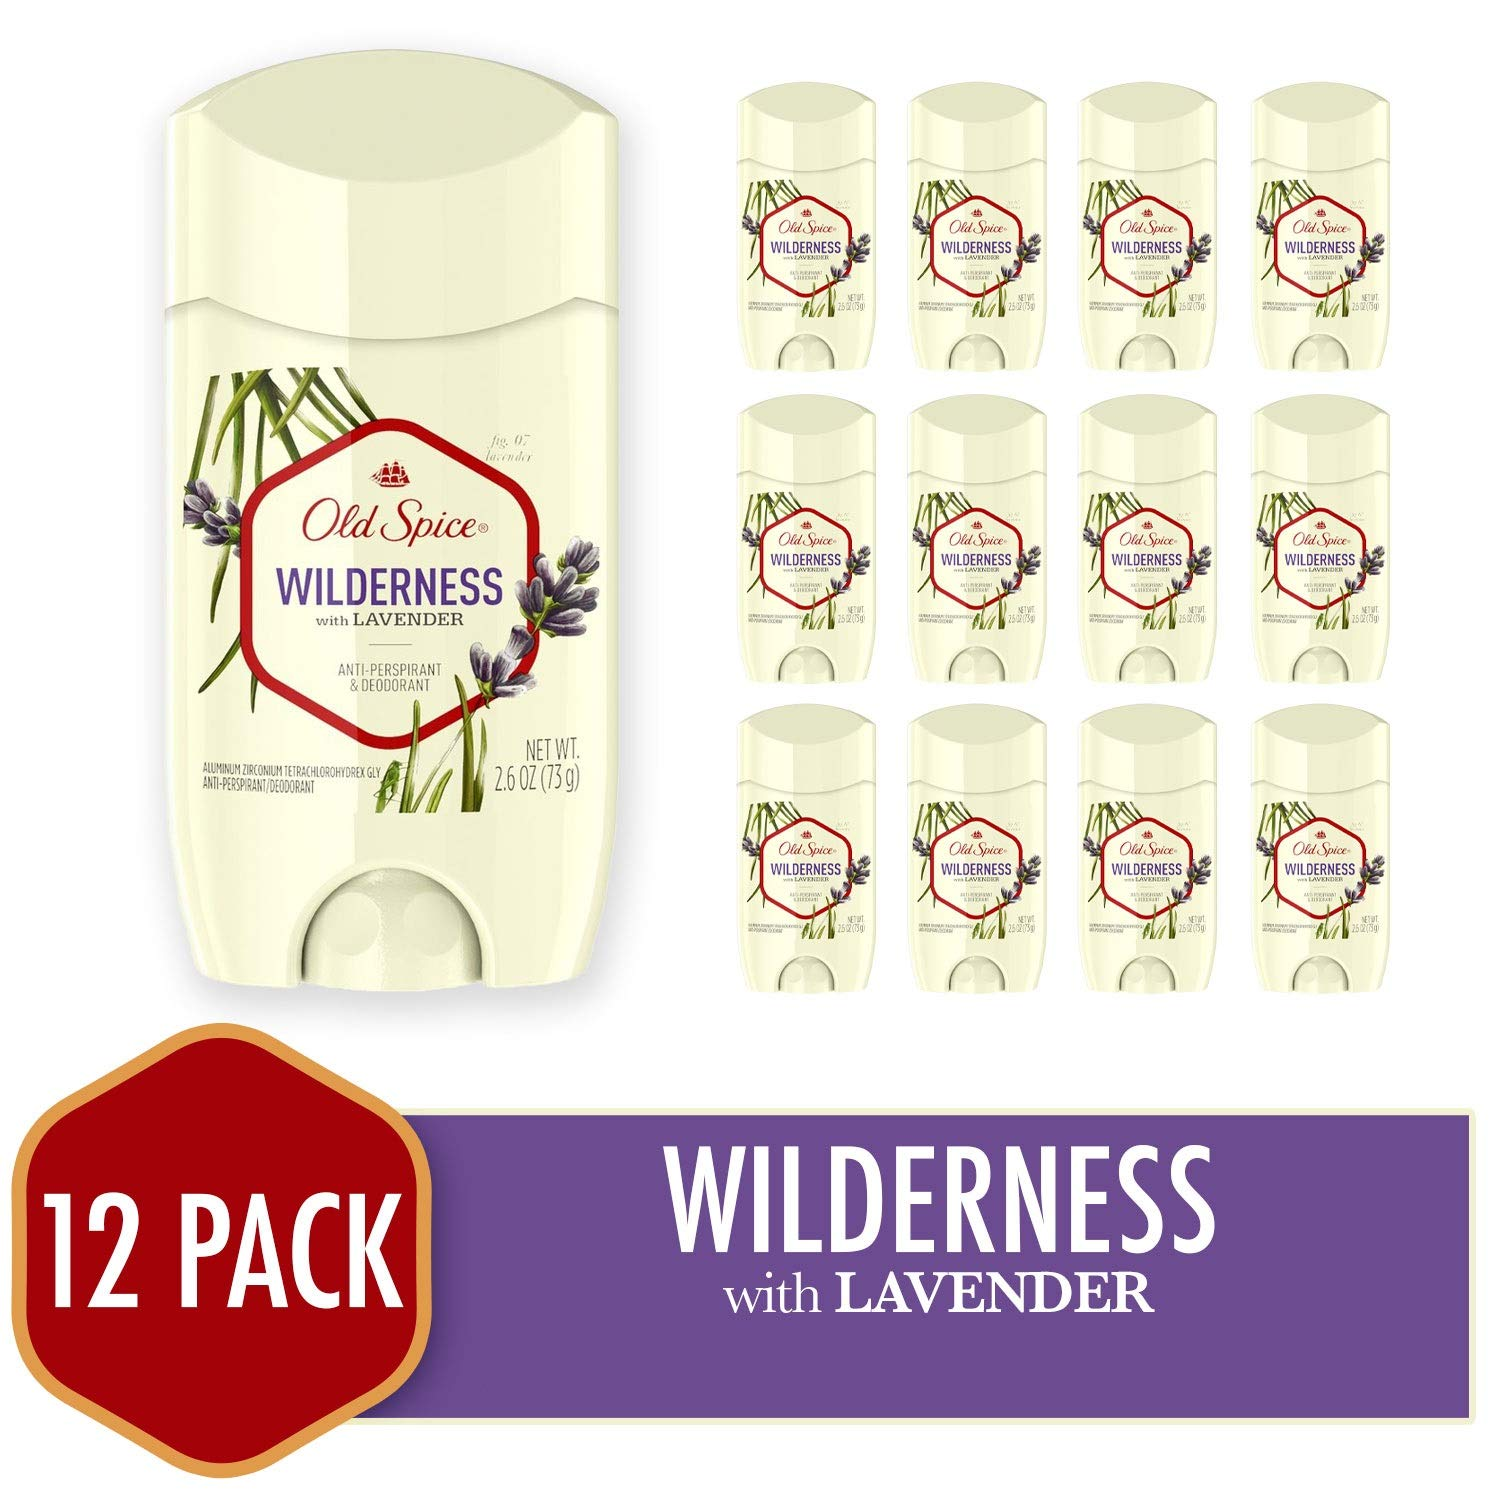 Old Spice Antiperspirant Deodorant for Men, Wilderness With Lavender, Inspired By Nature, Invisible Solid 2.6 Ounce (Pack of 12) by Old Spice